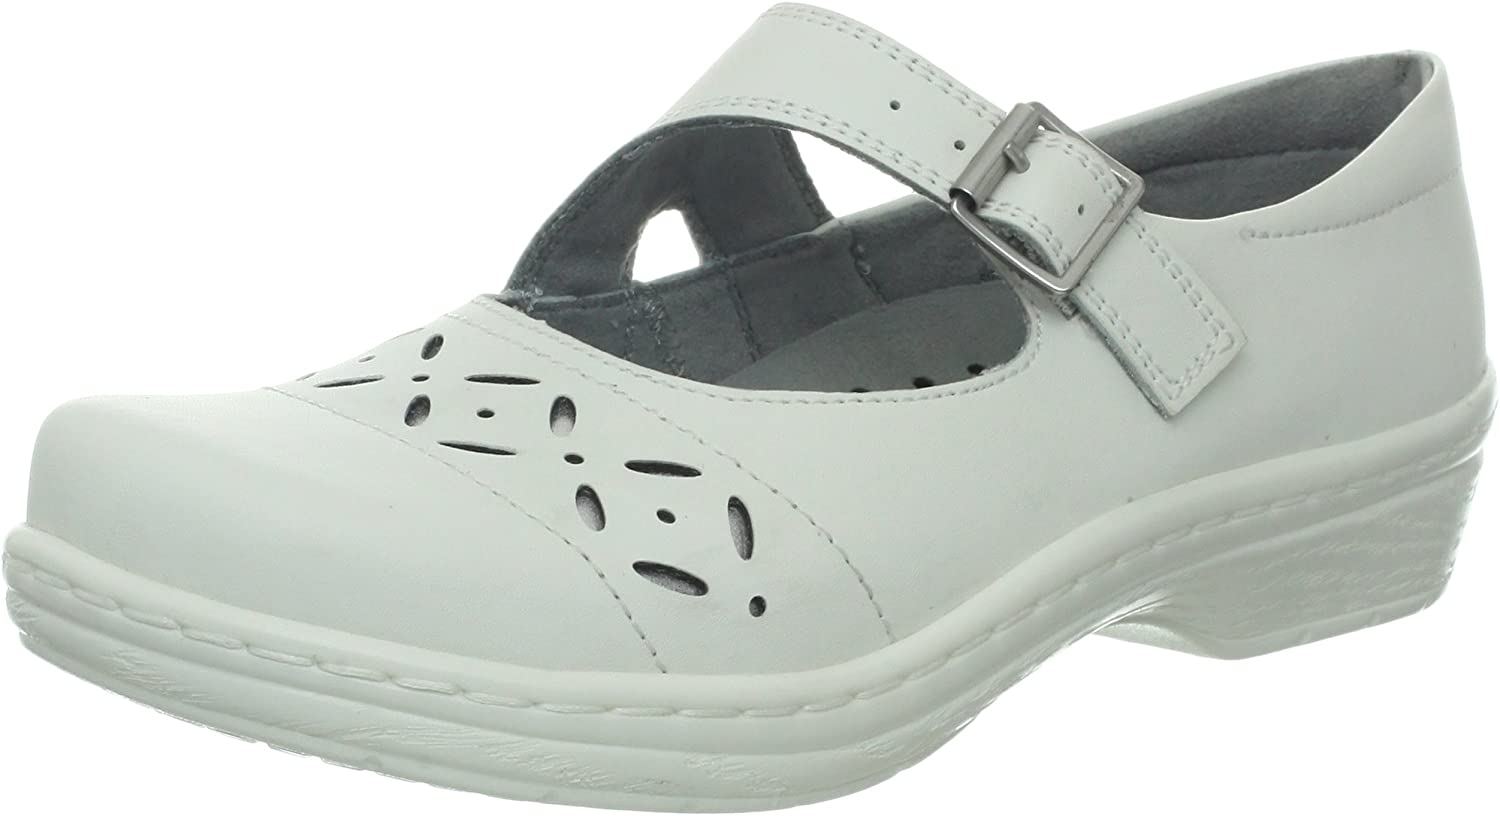 Klogs USA Women's Madrid Clog